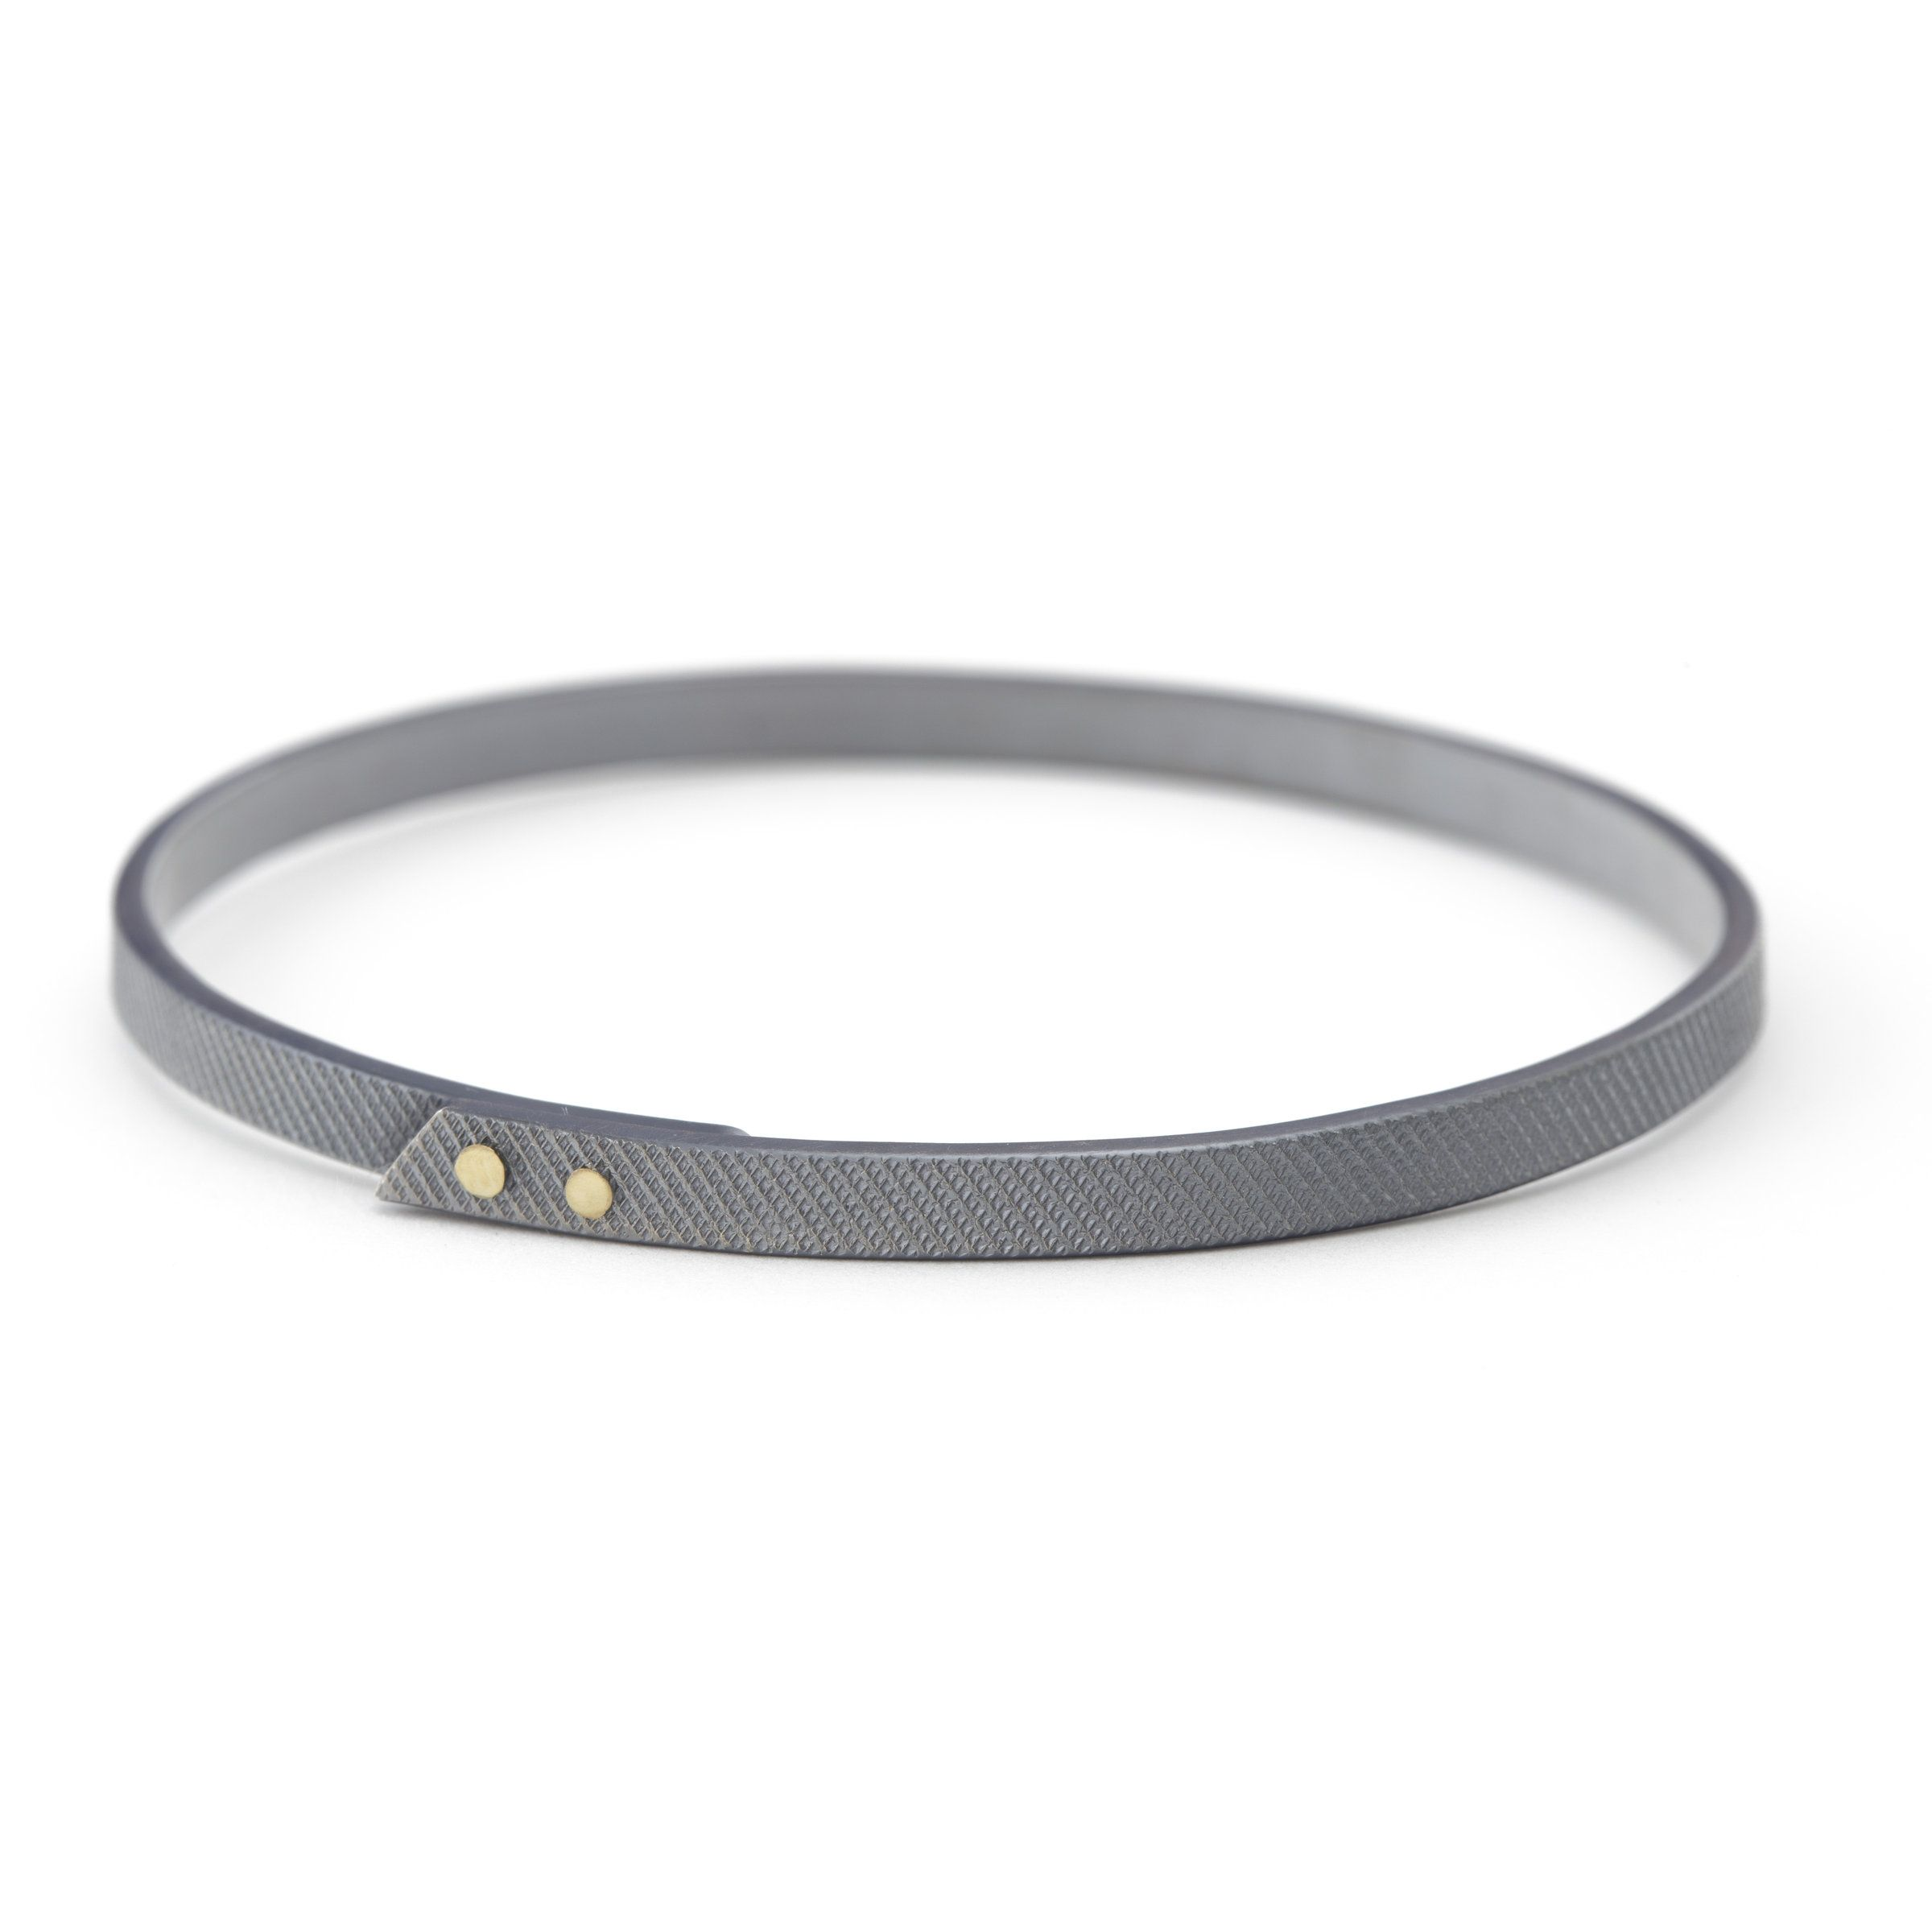 Riveted Gold Bangle by Kendra Renee. A textured band of oxidized sterling silver is accented with two 14K gold rivets for a sleek design with an industrial edge.